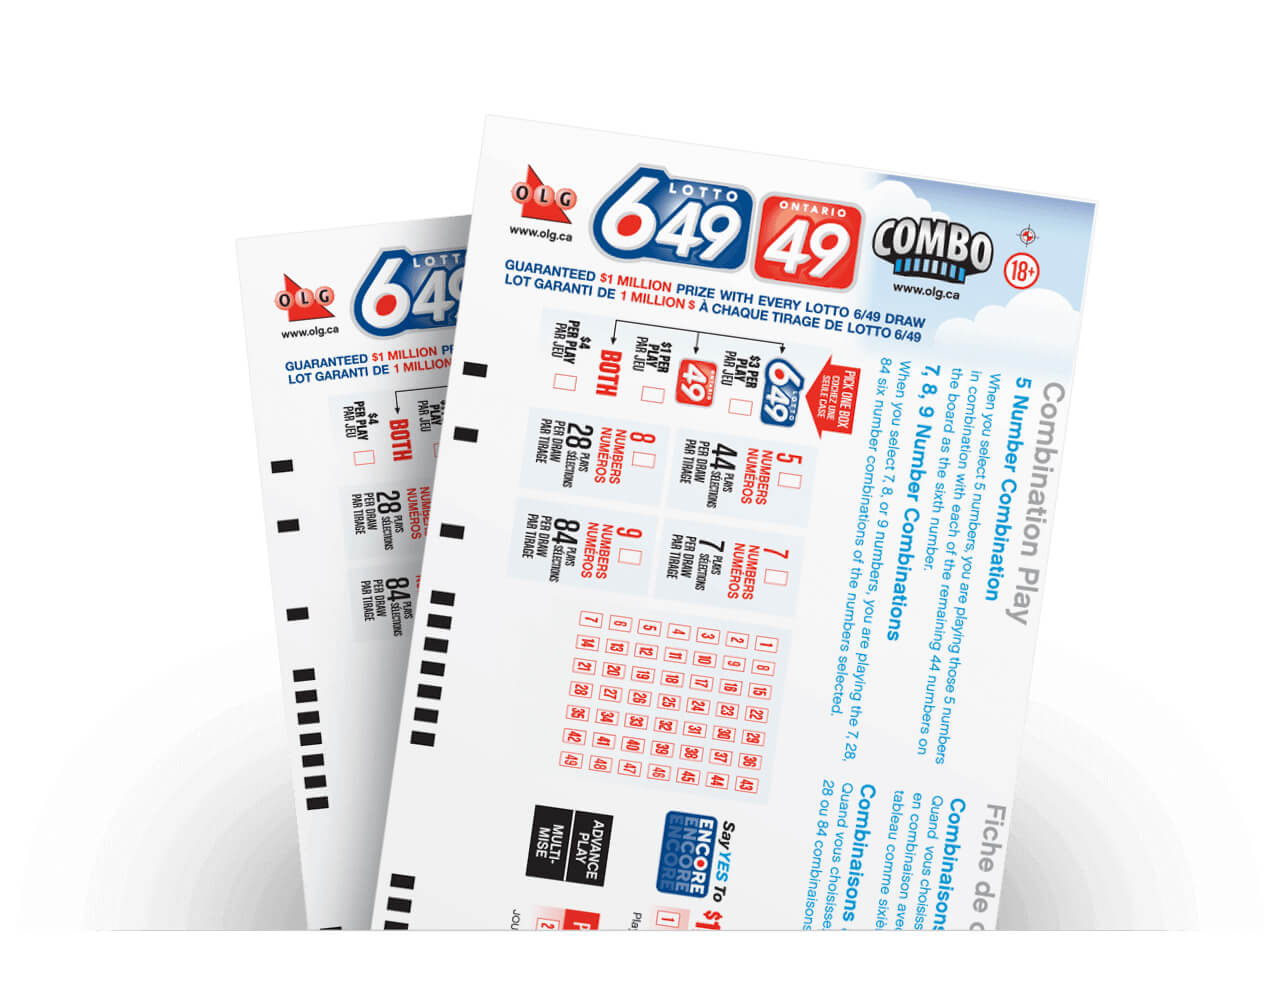 LOTTO 6/49 Combination Play | OLG